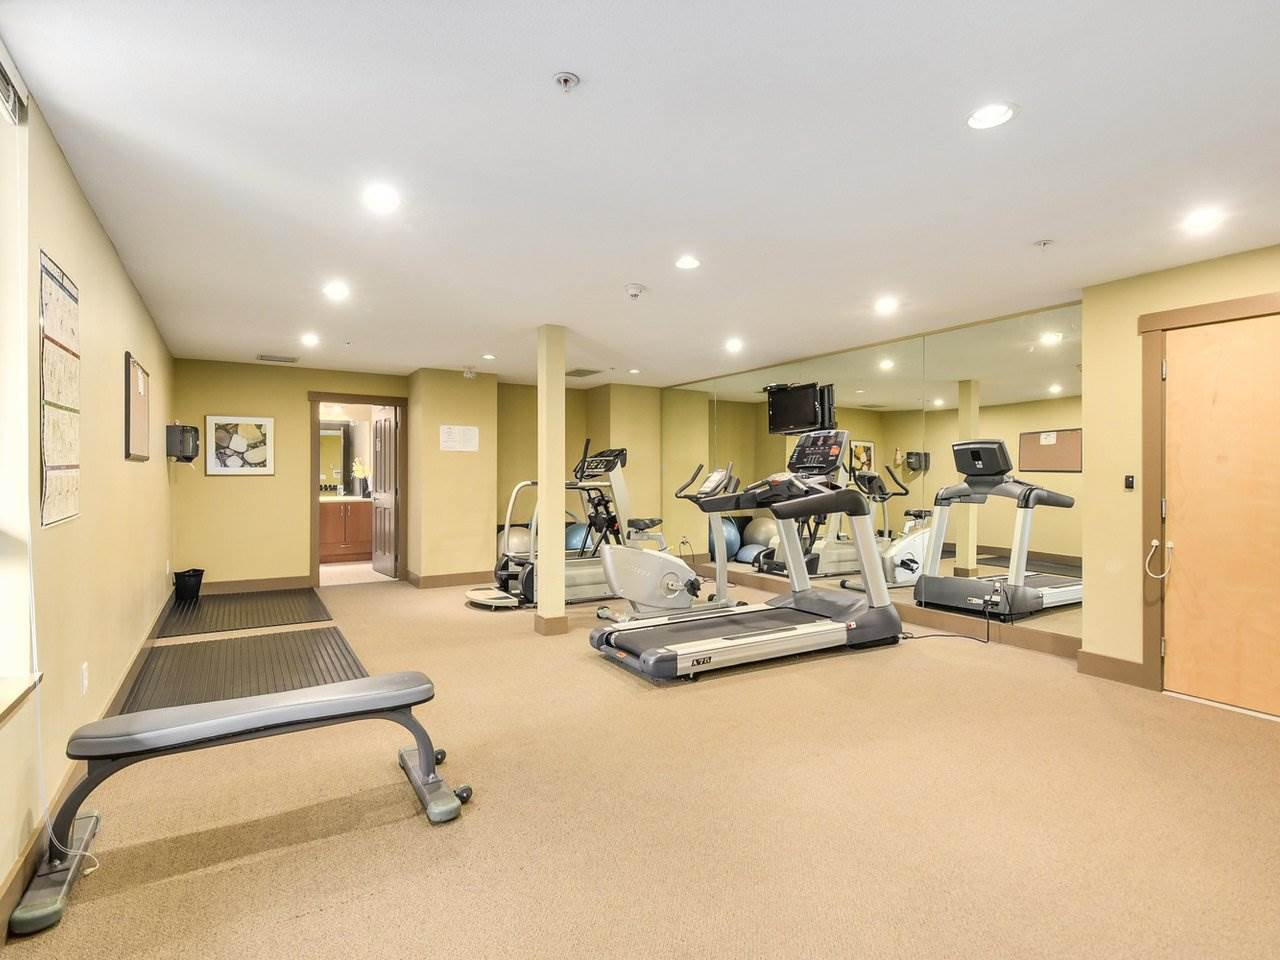 Photo 15: Photos: 106 2601 WHITELEY COURT in North Vancouver: Lynn Valley Condo for sale : MLS®# R2186381